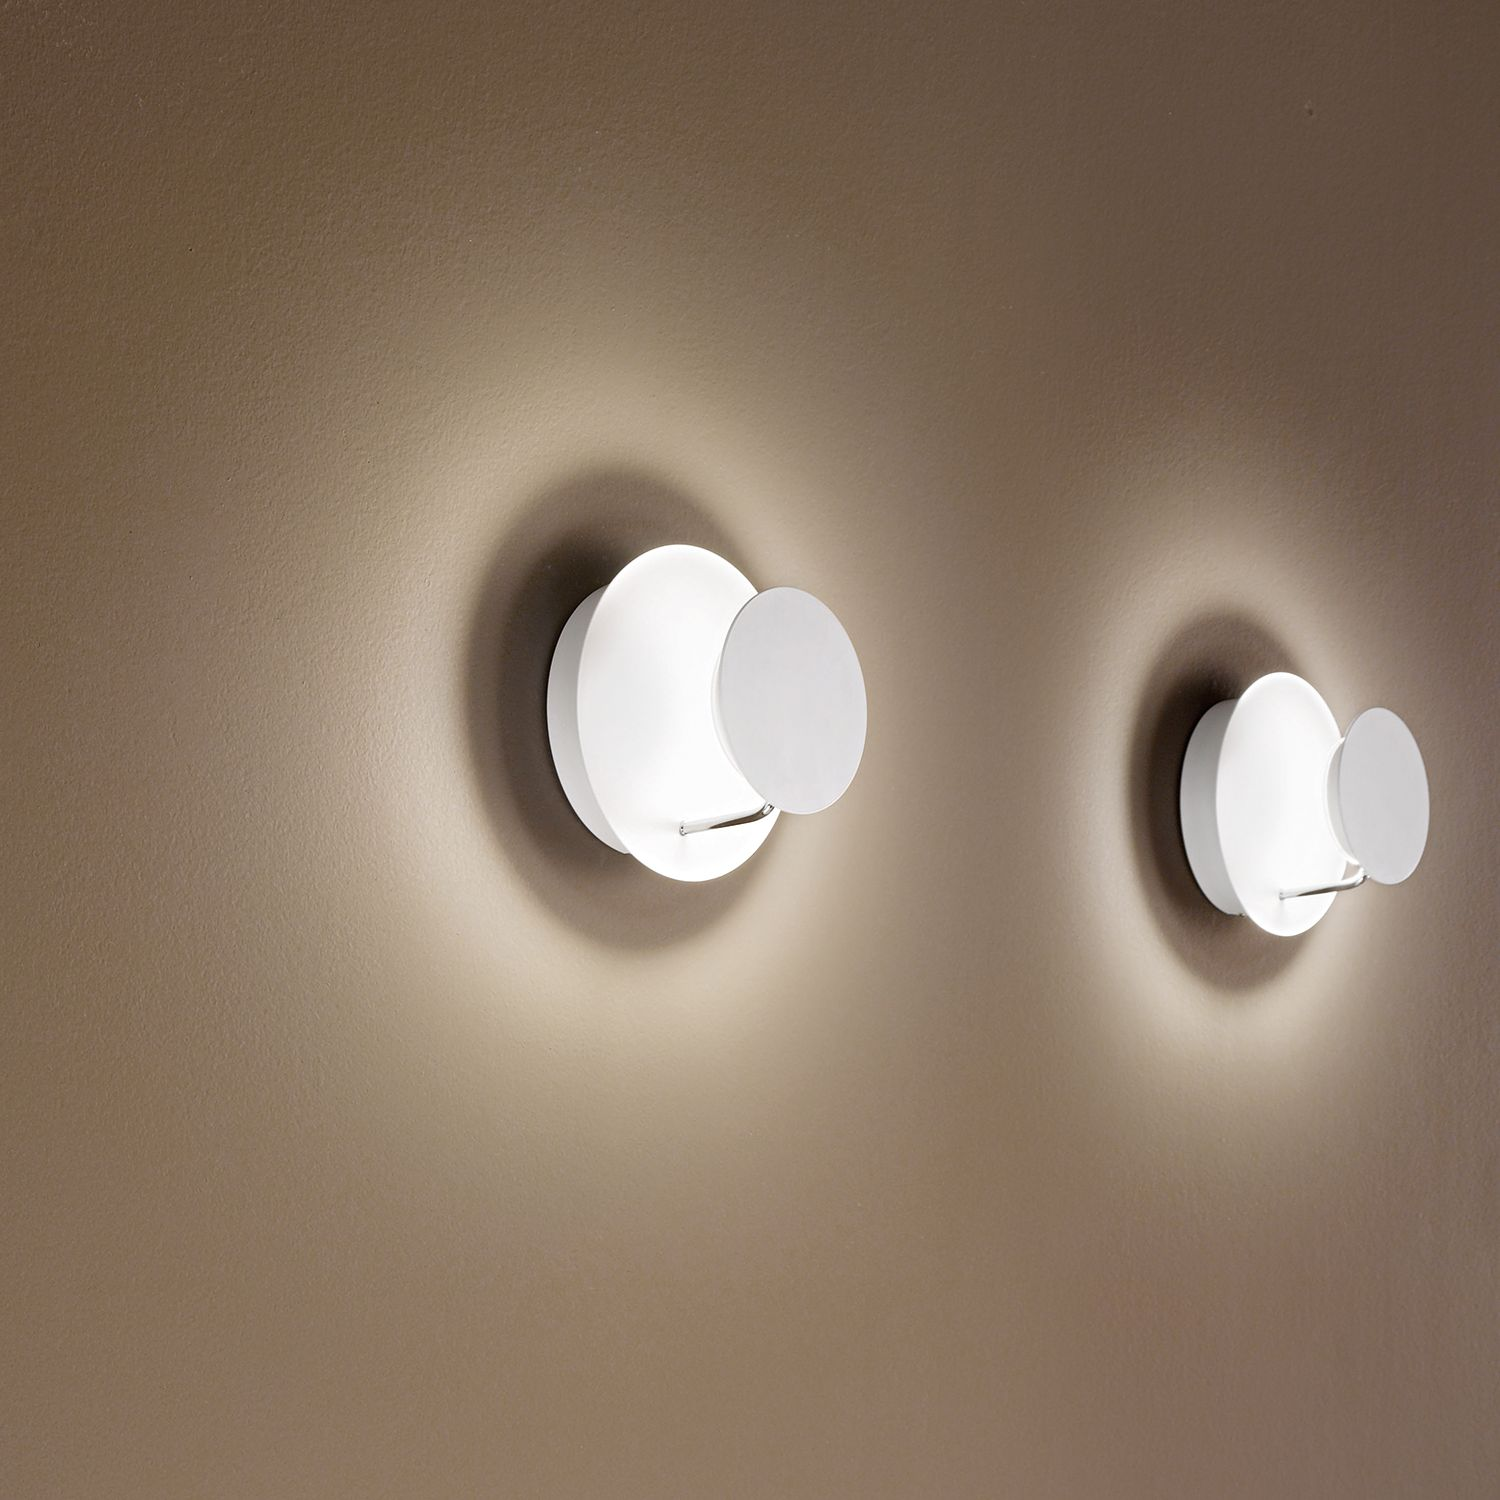 home24 LED-Wandleuchte Fullmoon